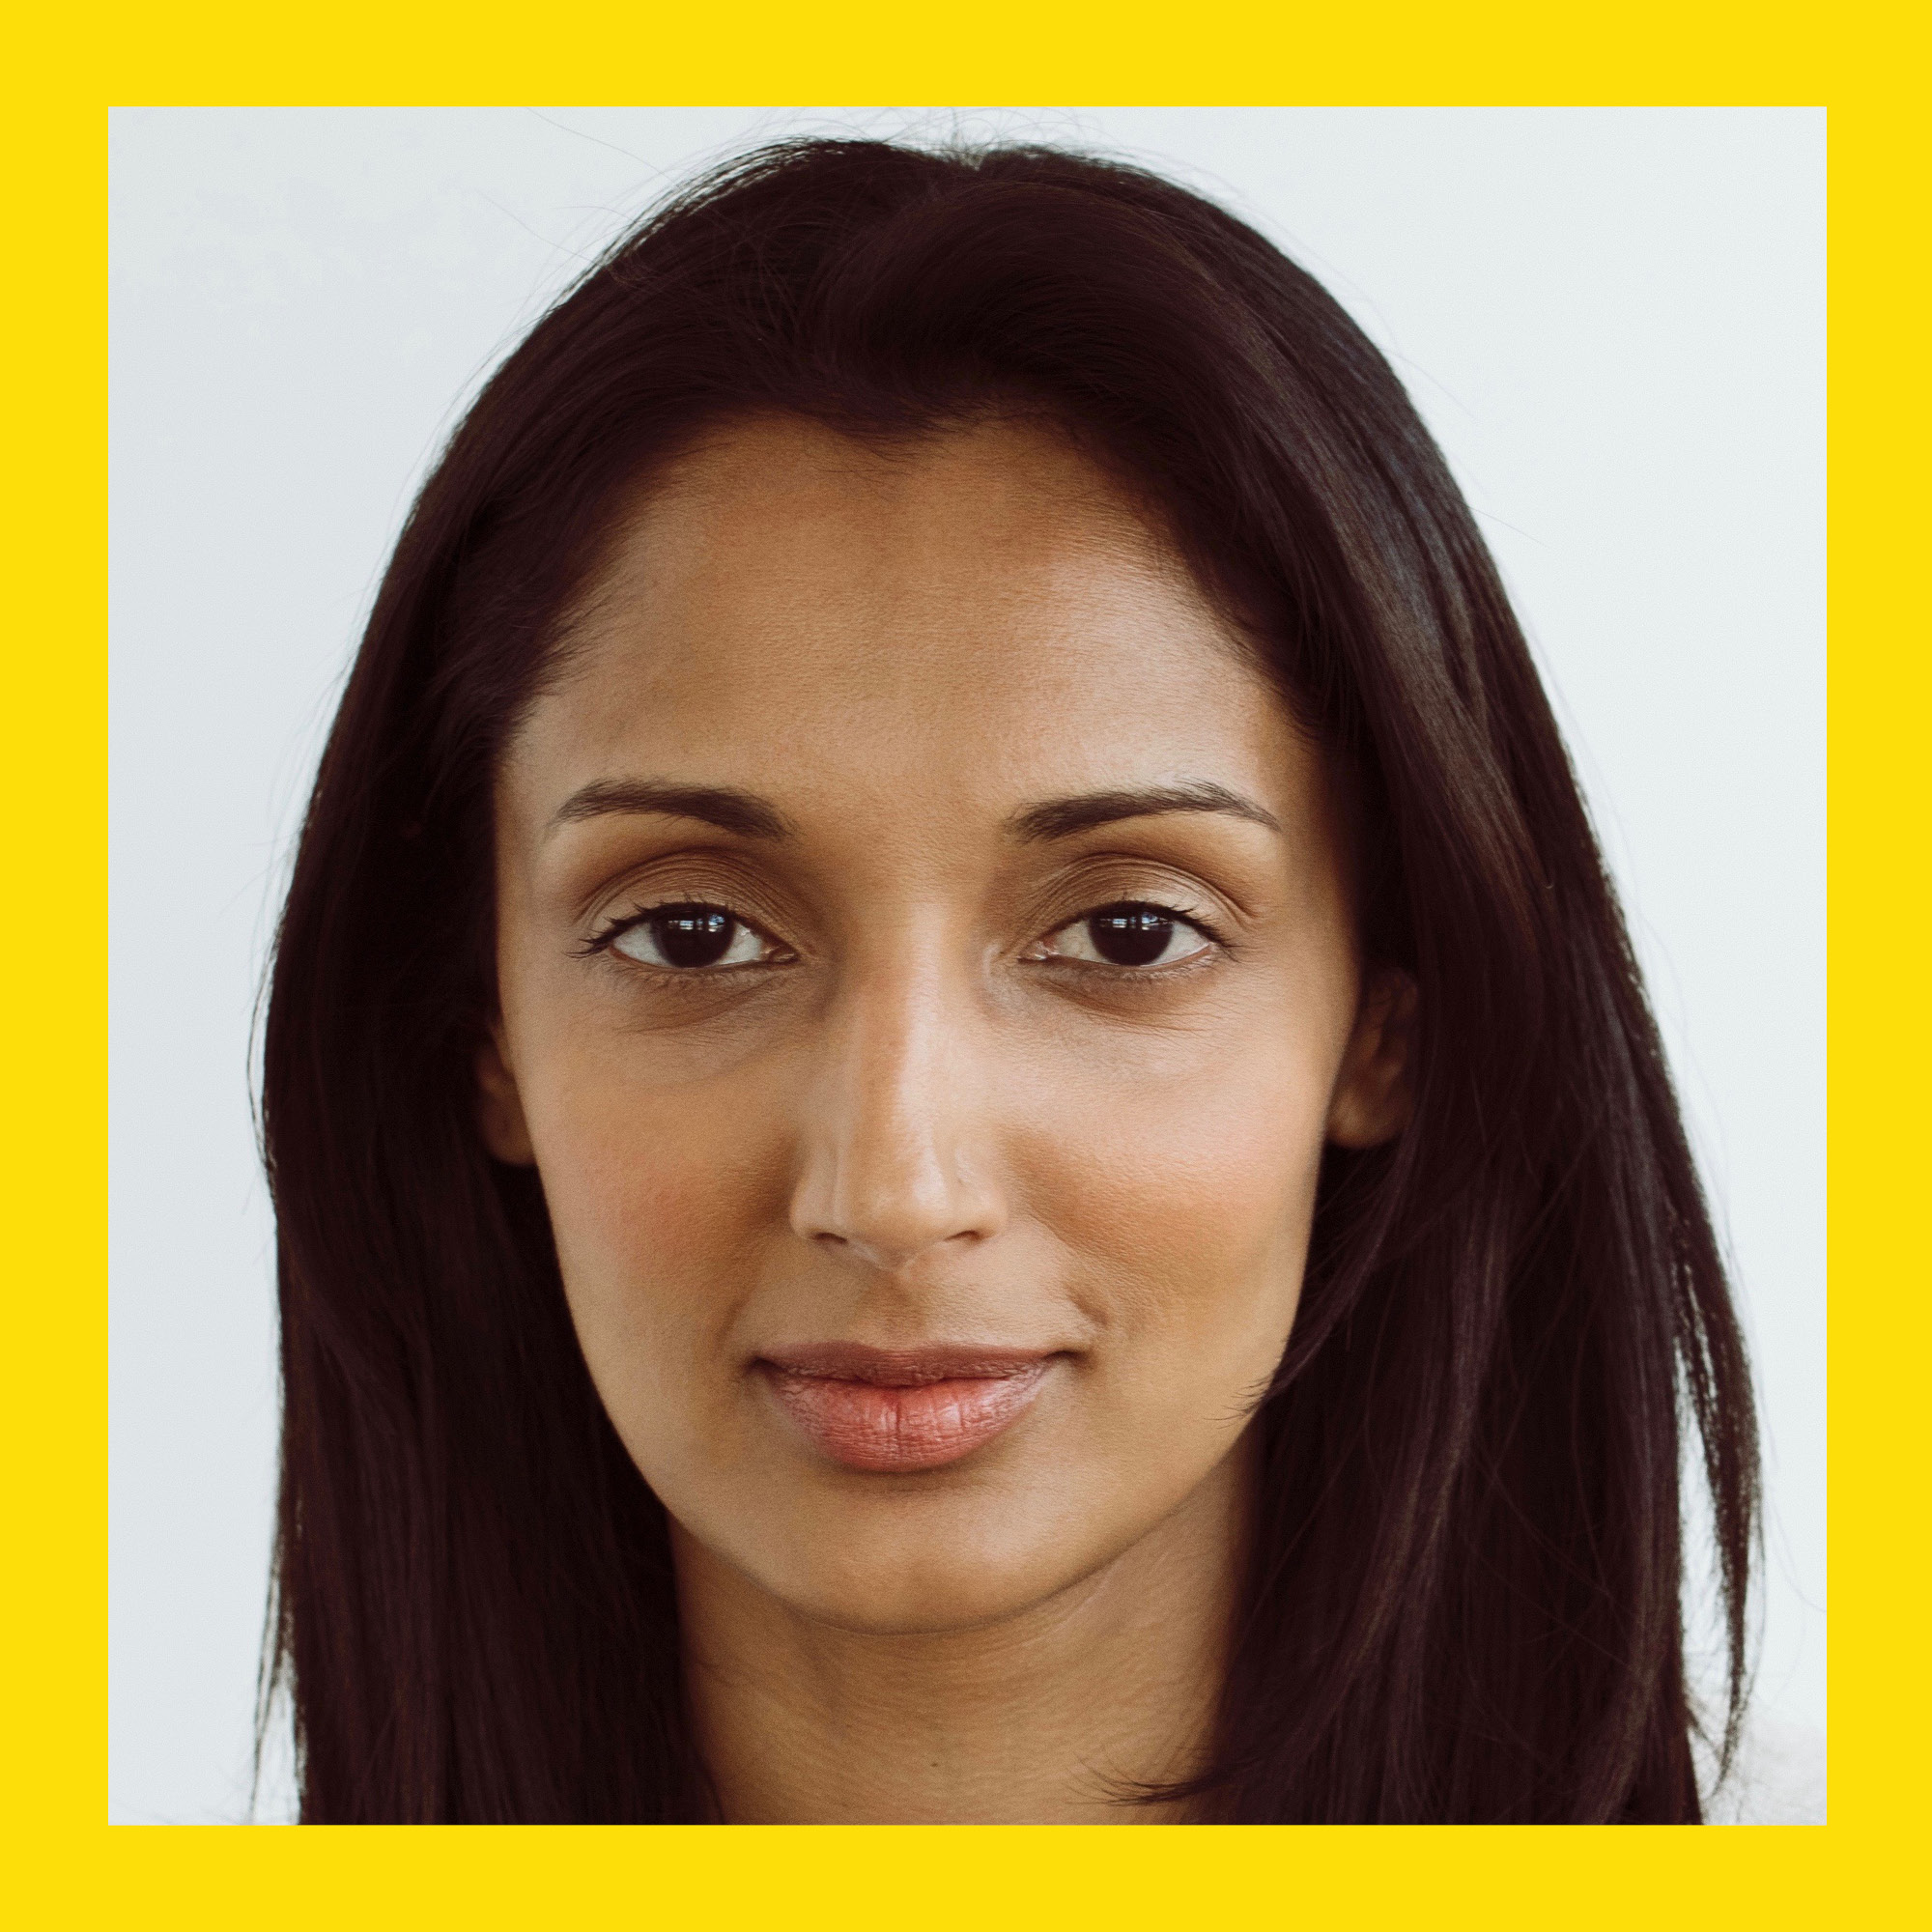 Monisha Rajesh is a British journalist whose writing has appeared in Time magazine, The New York Times, The Guardian and The Sunday Telegraph in which she wrote a column about her journey Around the World in 80 Trains. Her first book Around India in 80 Trains (2012) was named one of The Independent's best books on India. Born in Norfolk and mostly raised in Yorkshire - with a brief stint in Madras - she currently lives in London with her husband and daughter. -